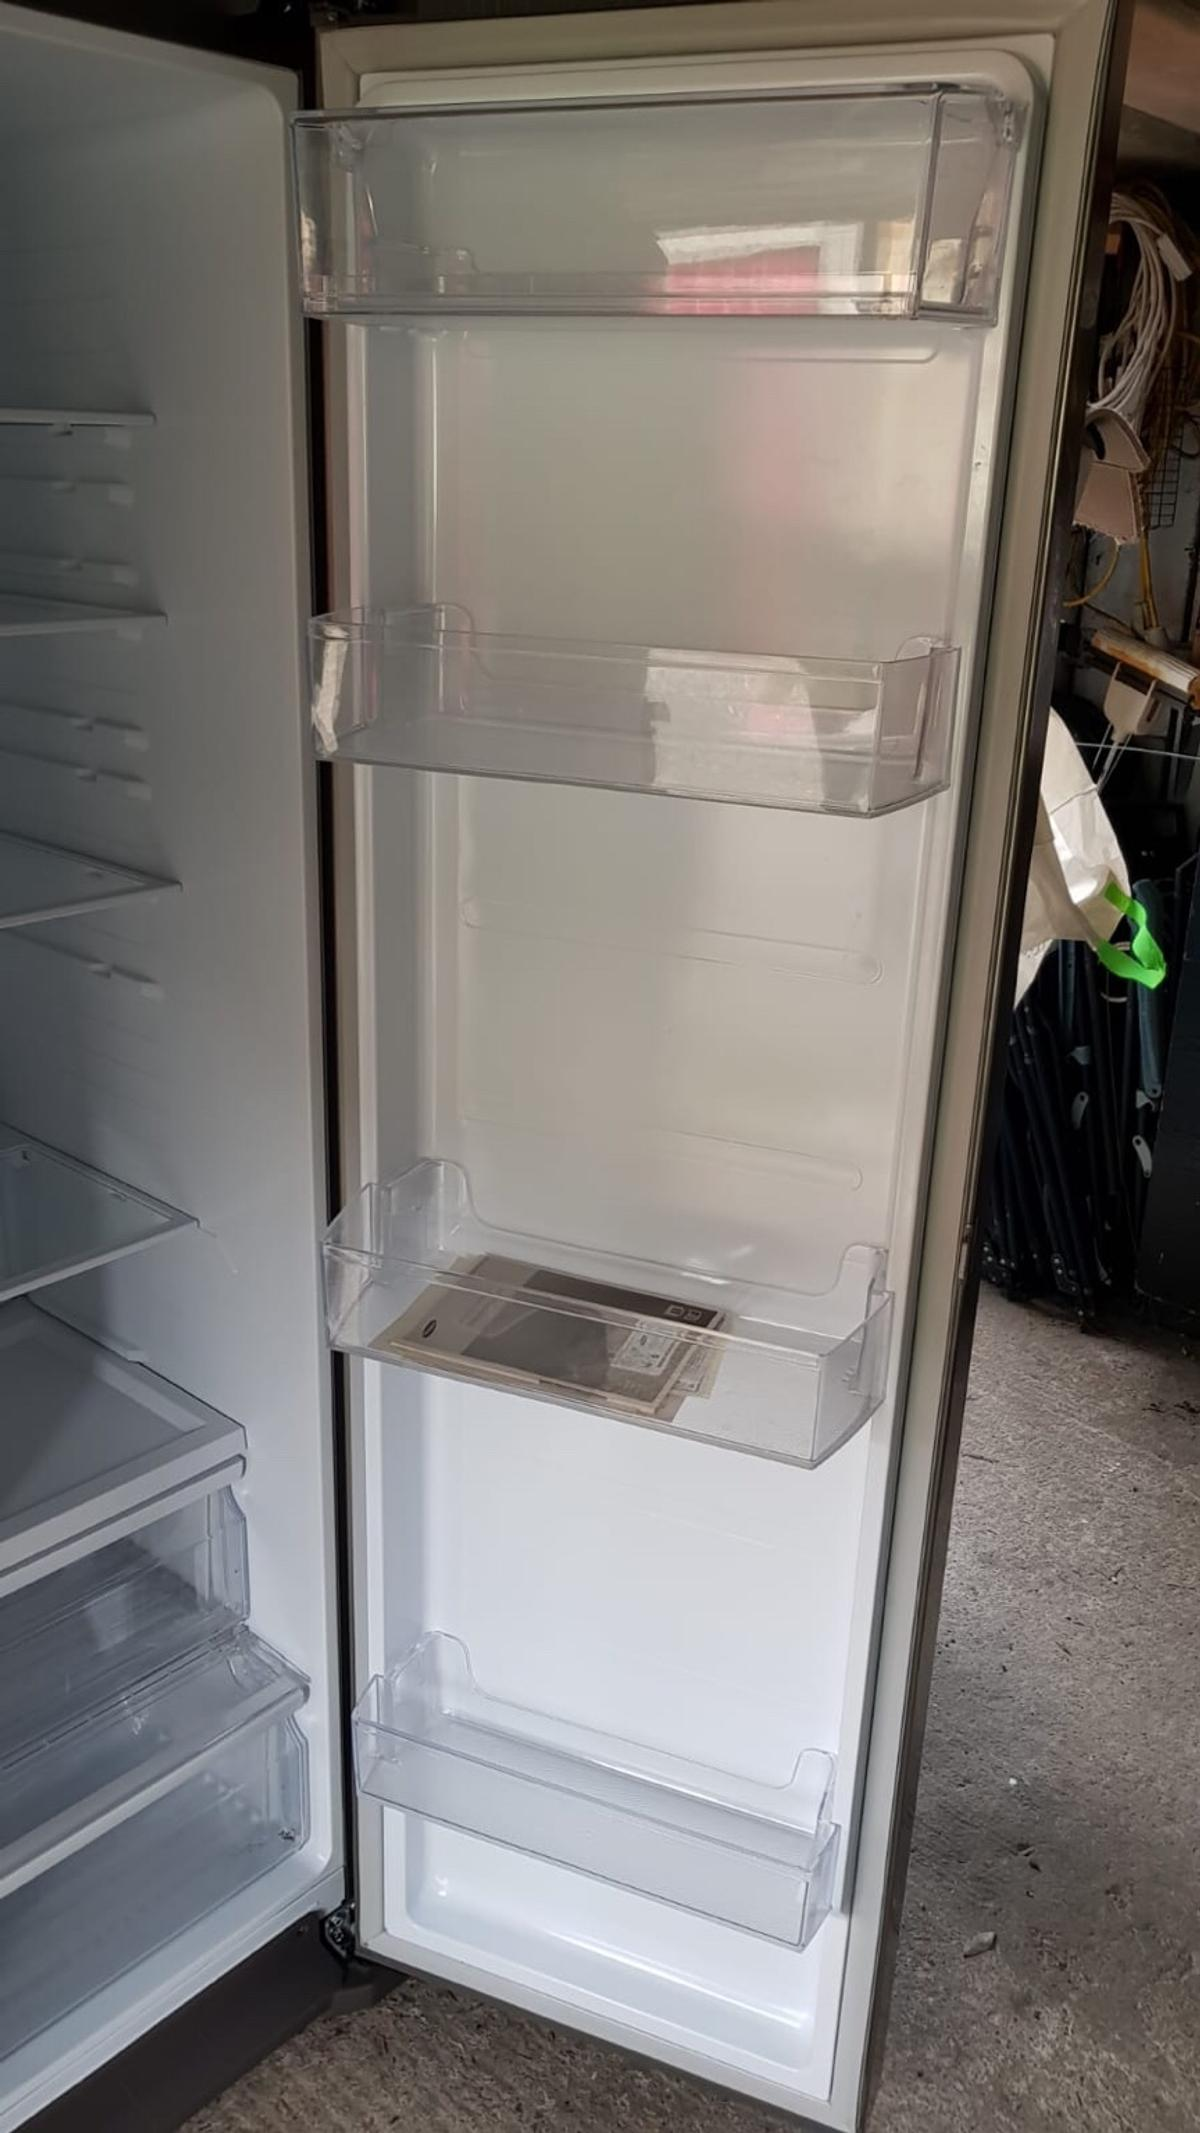 Samsung AmericaN fridge/freezer RS7667FHCSP in TW2 Thames